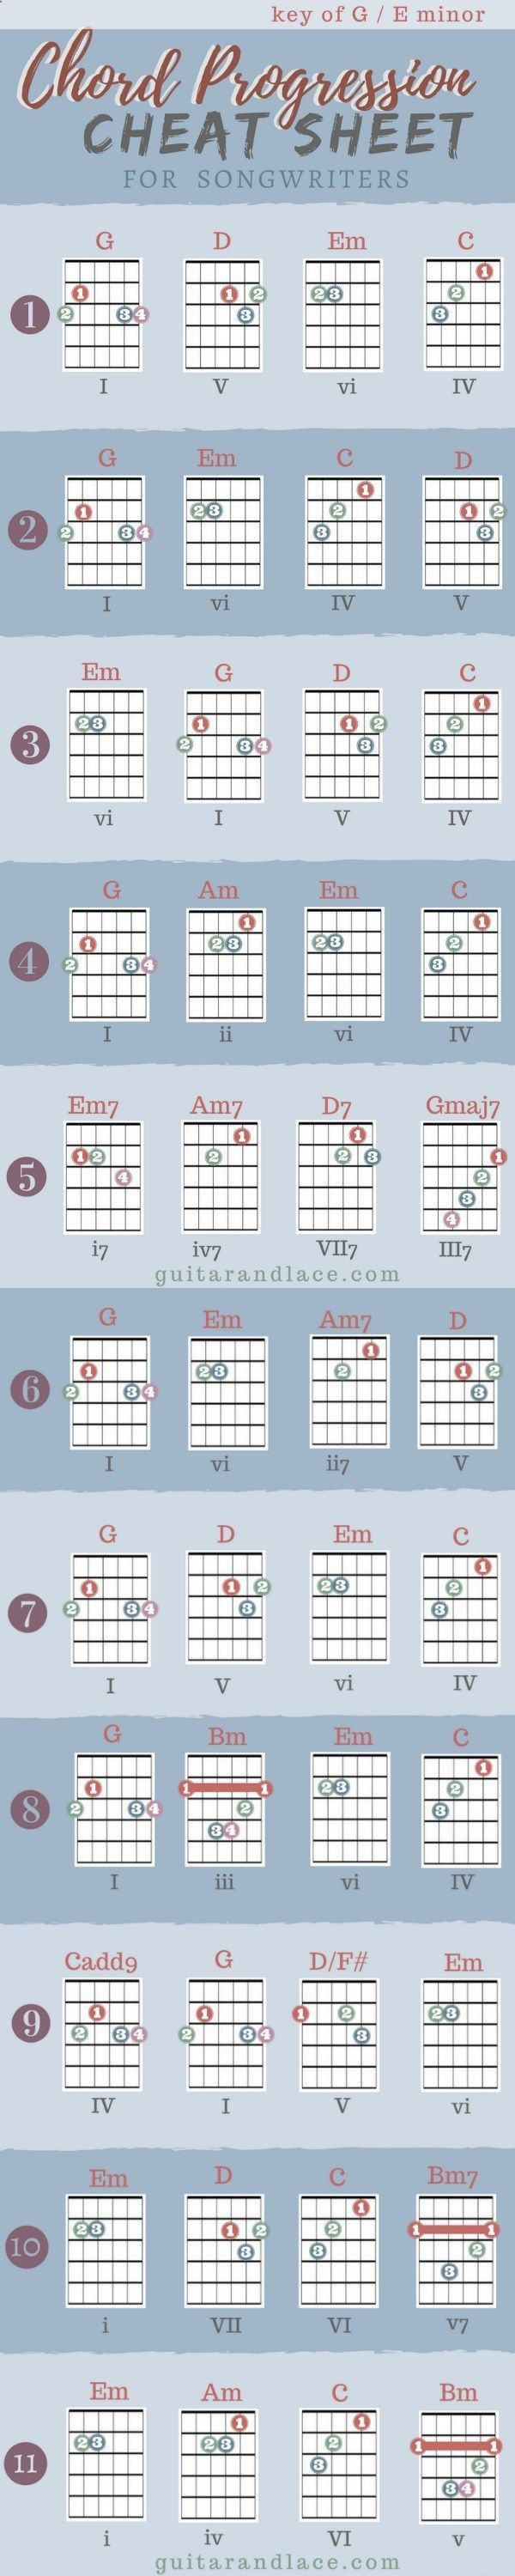 Free Songwriting Cheat Sheets Guitar Chord Progressions Lyric Tips